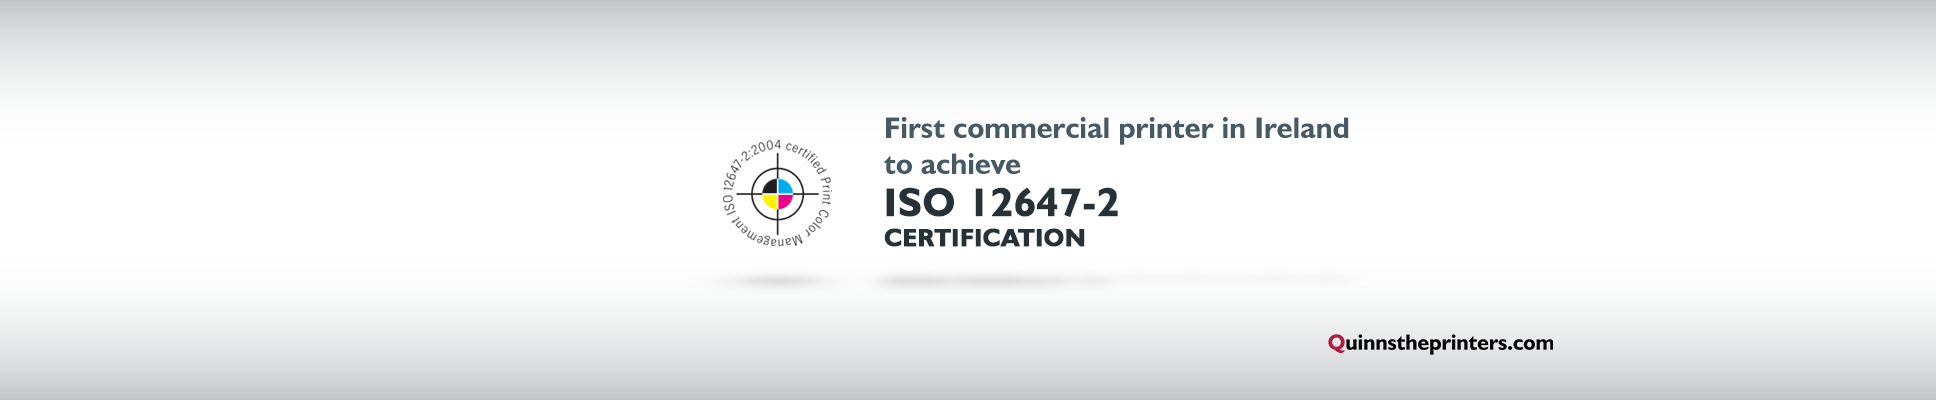 ISO 12647-2 certification